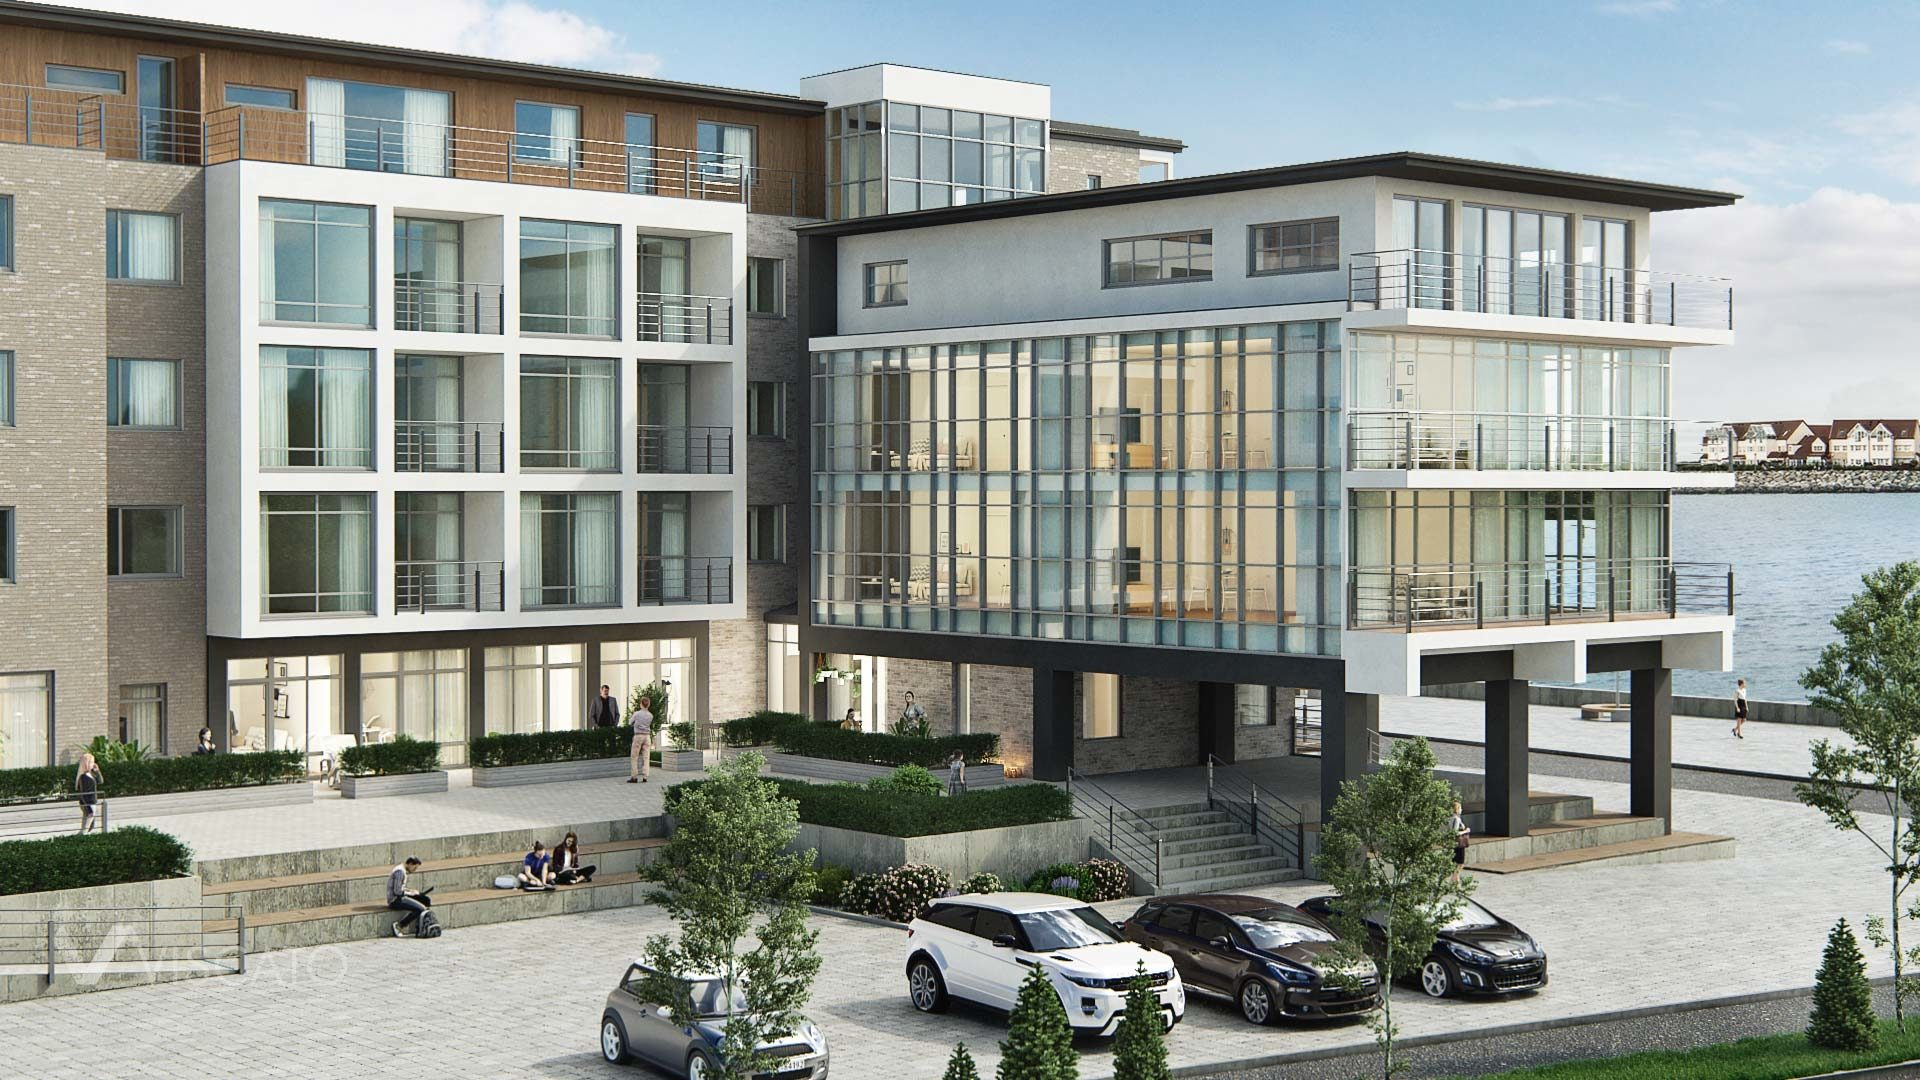 3D exterior visualization of an office and residential building, Viscato